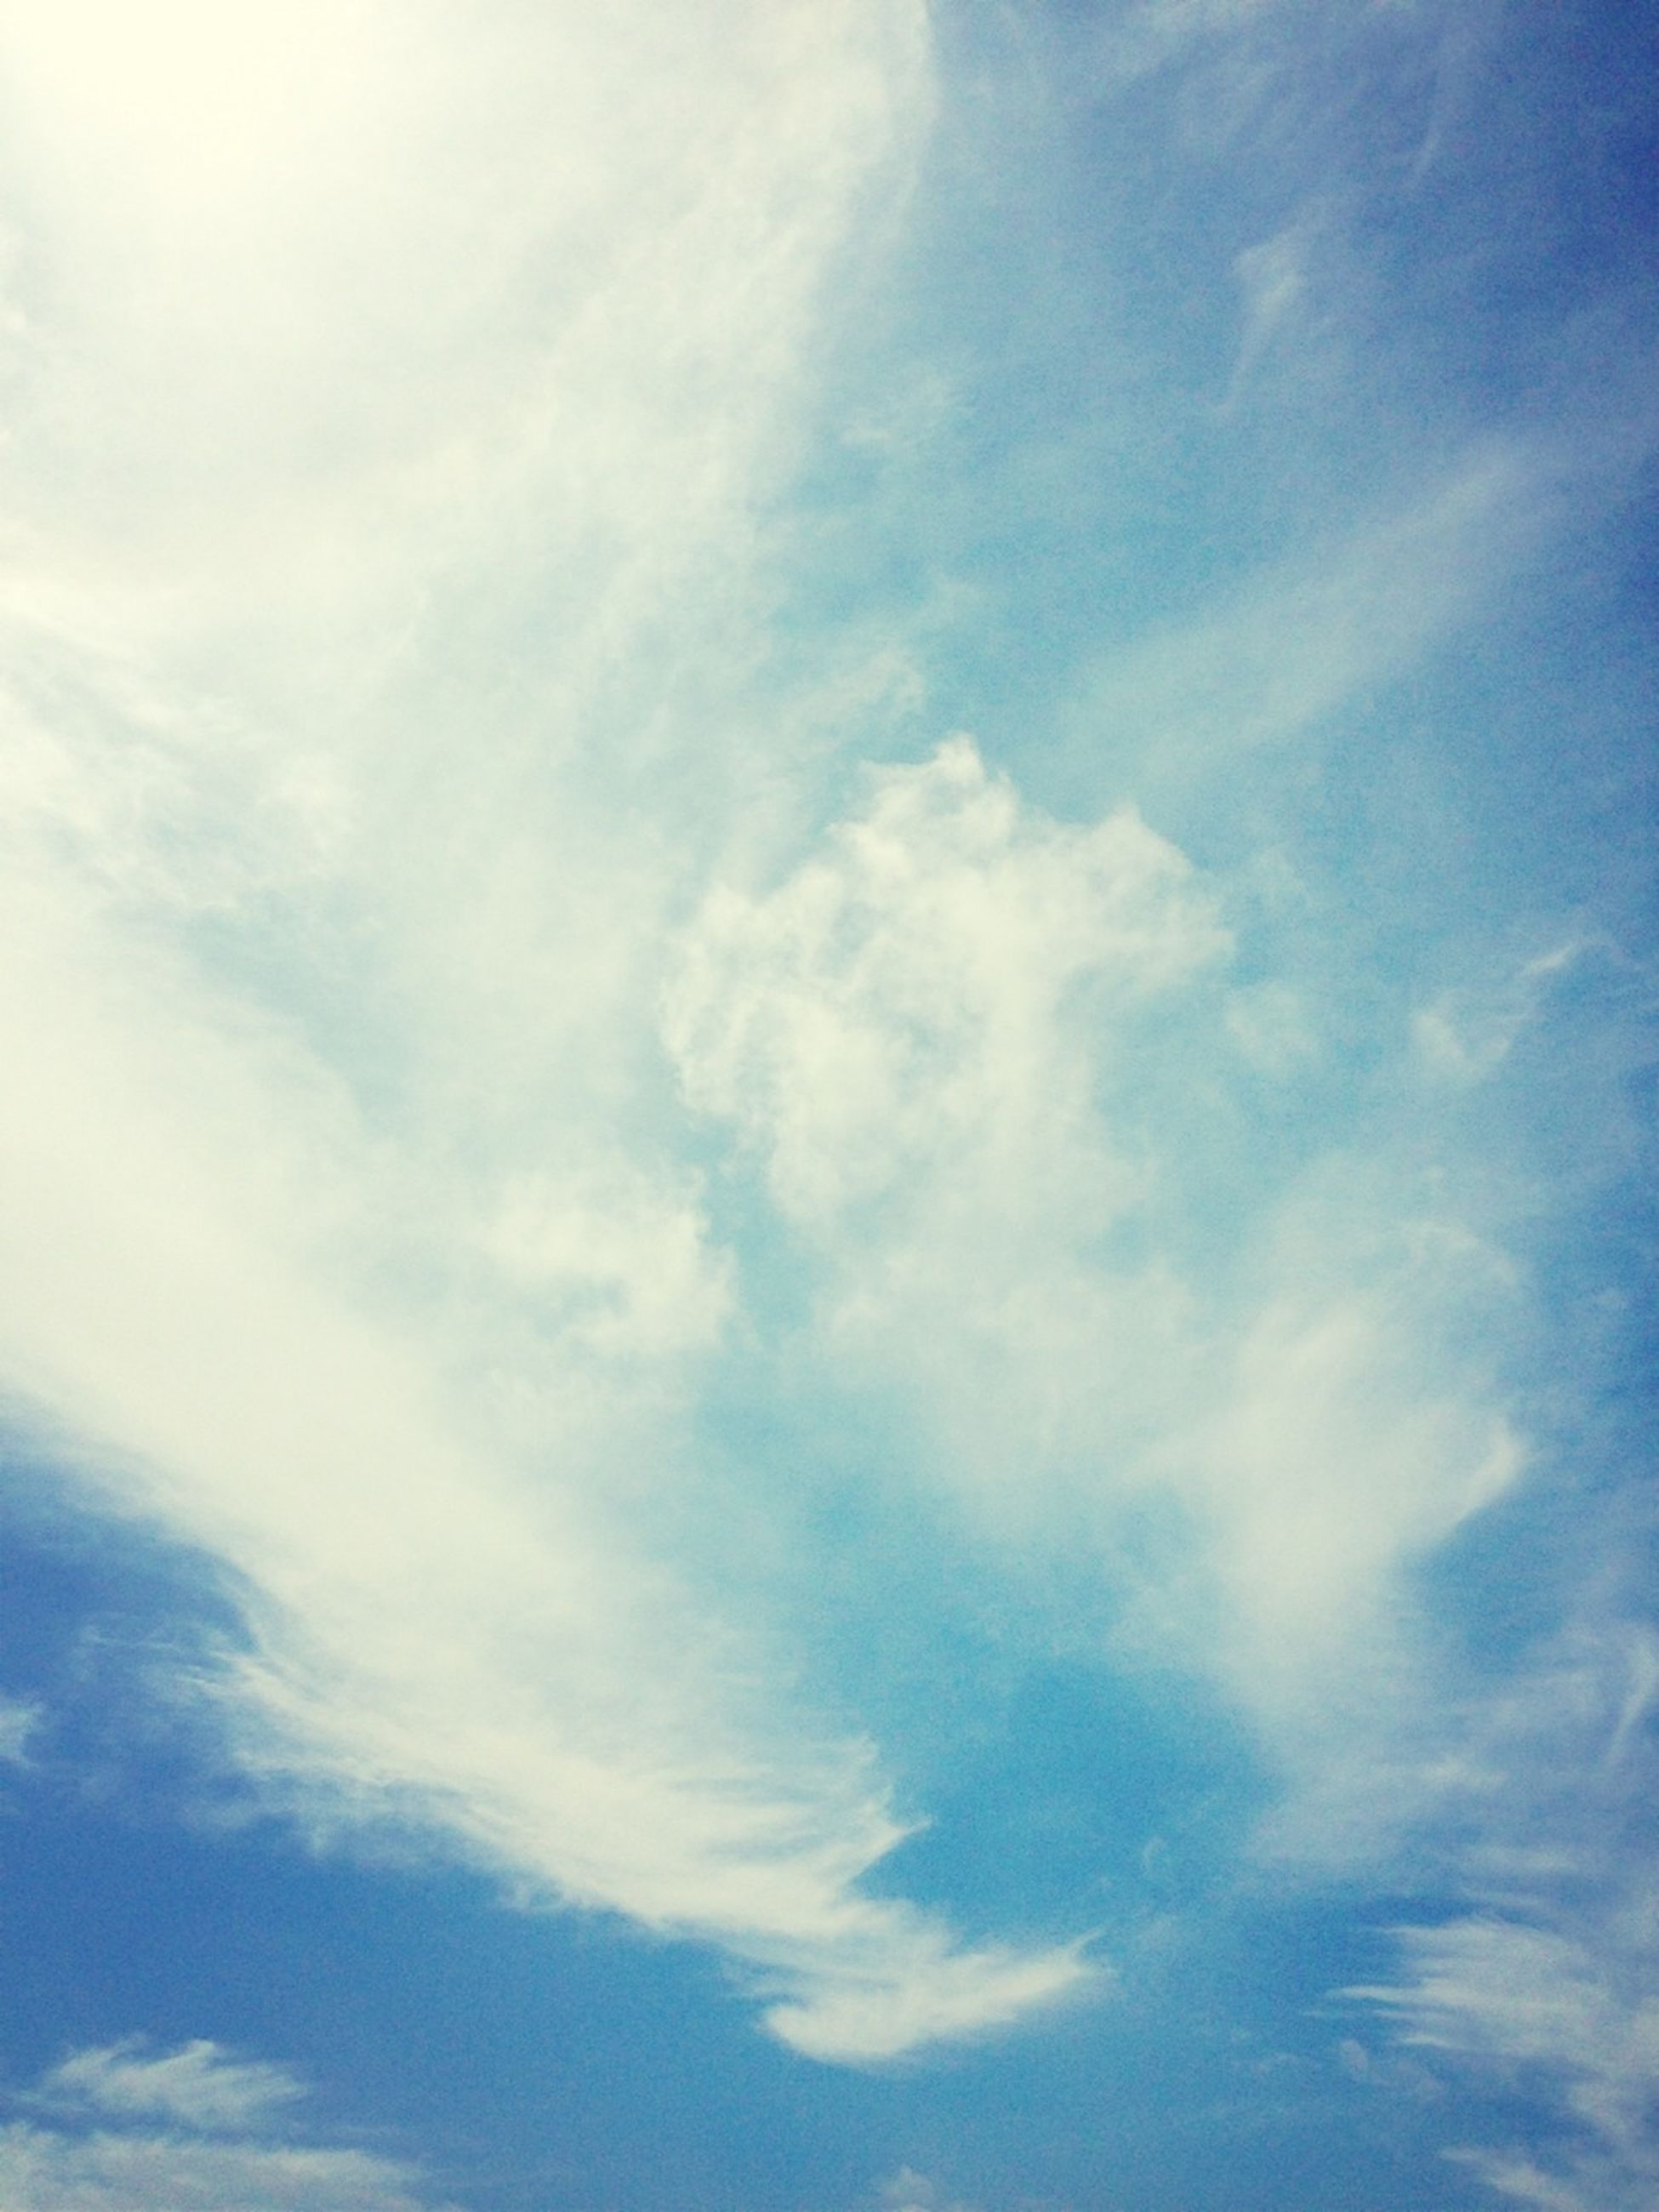 sky, low angle view, cloud - sky, blue, tranquility, beauty in nature, scenics, sky only, nature, backgrounds, tranquil scene, cloudy, full frame, cloud, cloudscape, idyllic, day, outdoors, no people, white color